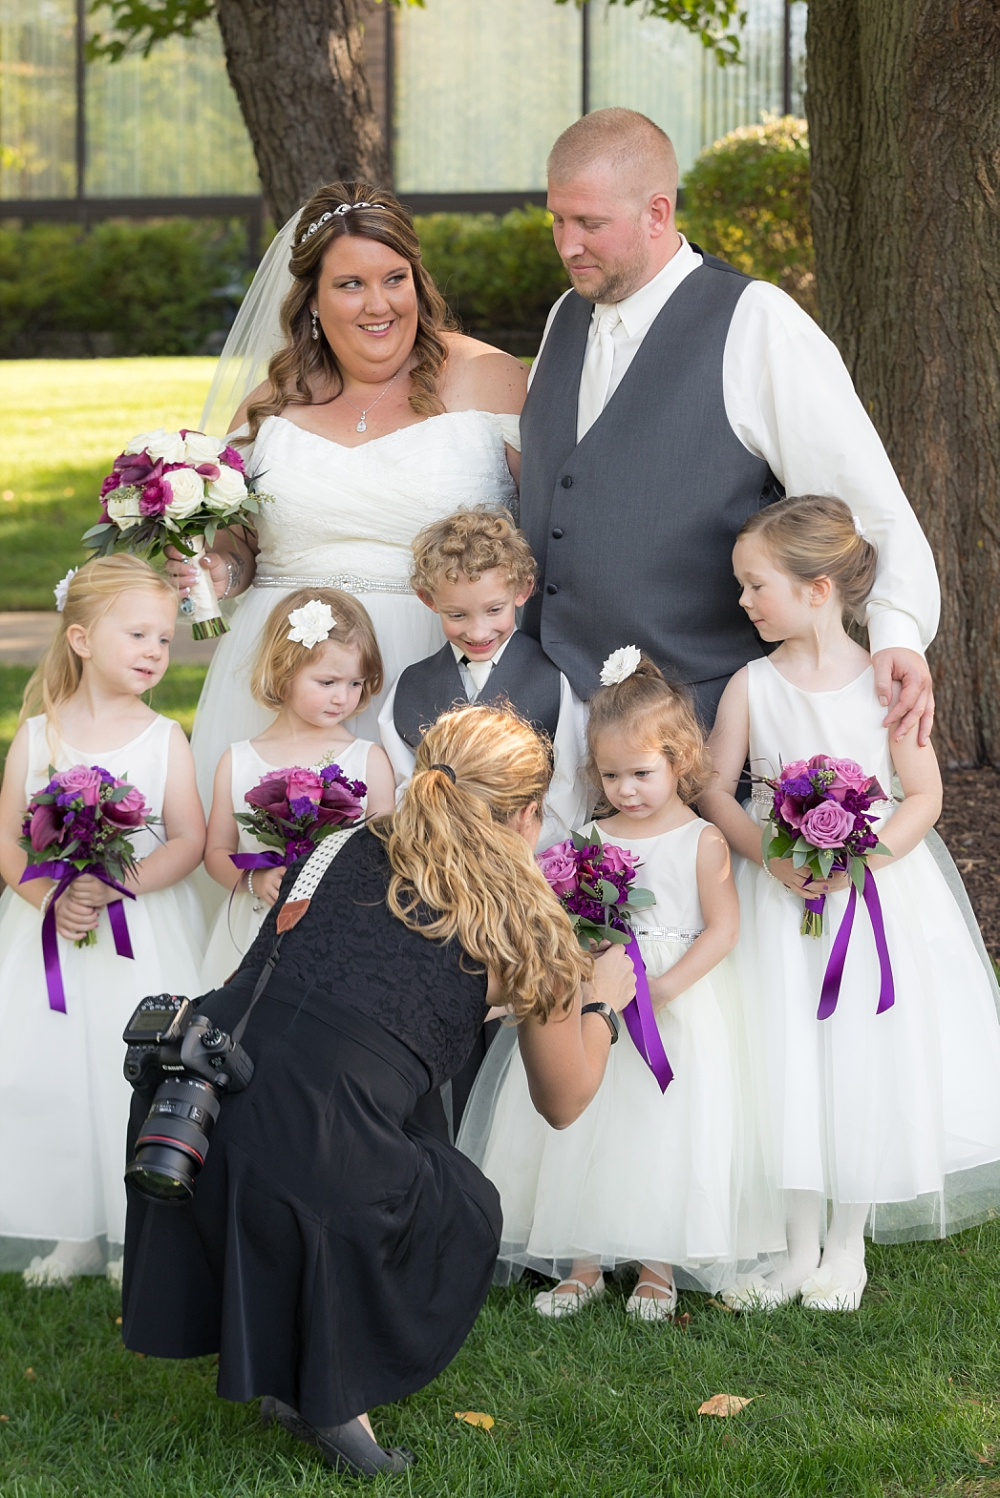 A good photographer makes sure everyone in the bridal party looks their best...including the littlest members.